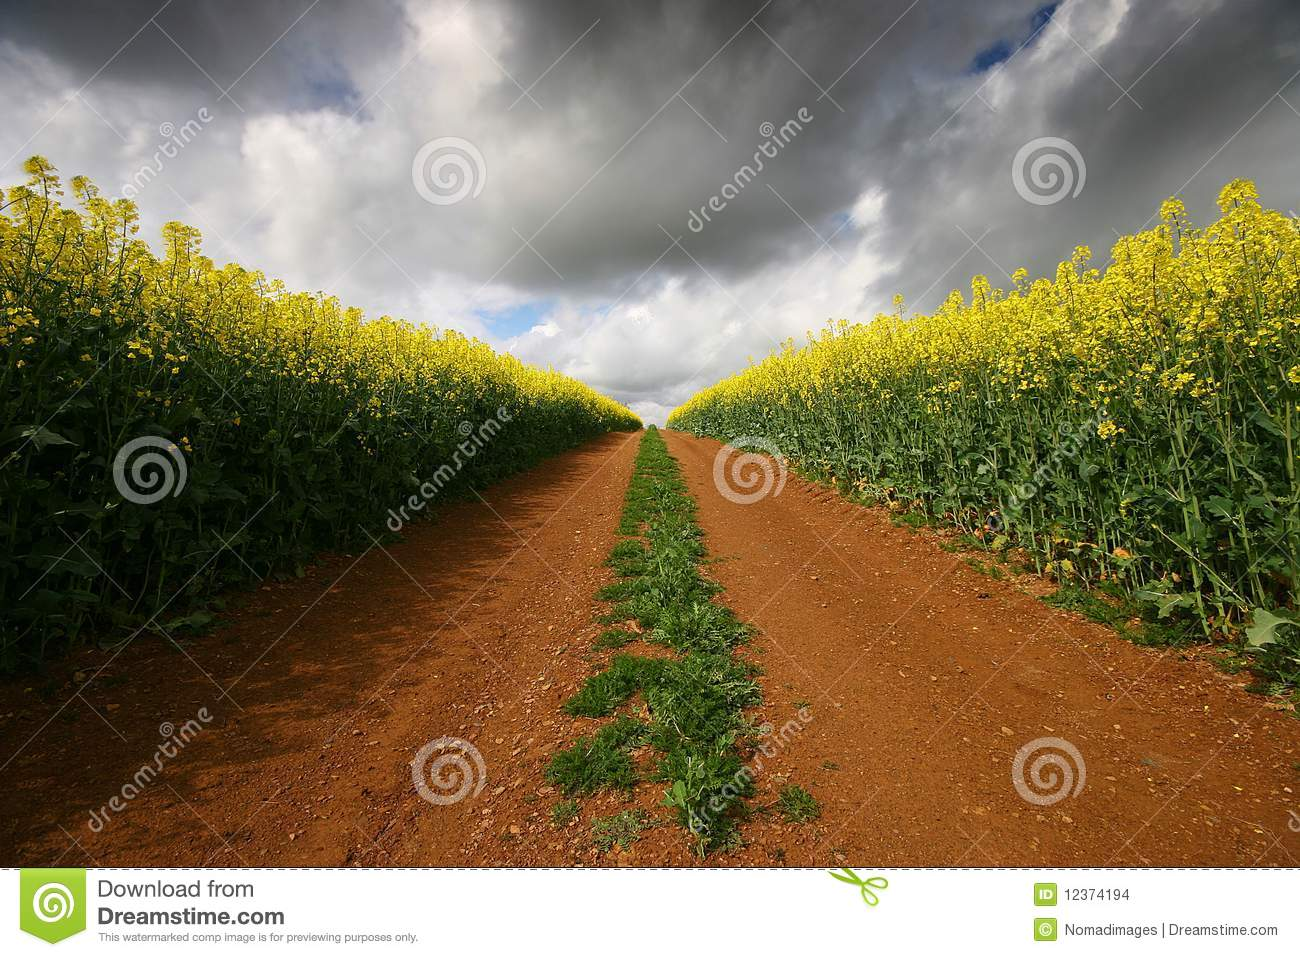 Dirt track through red soil and yellow crop stock images for Soil yellow color